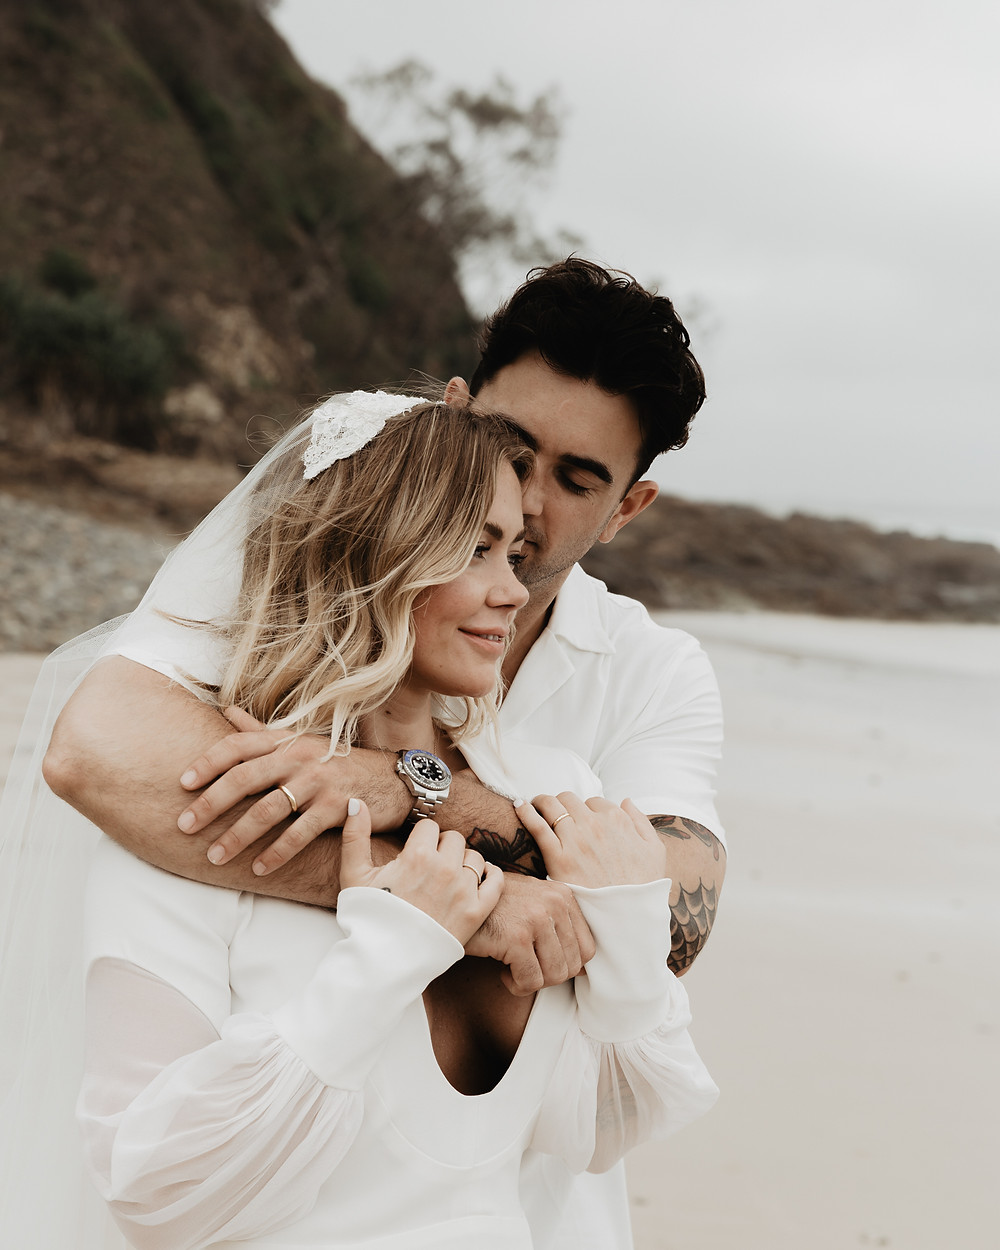 young married couple shares an intimate moment after eloping on the beach